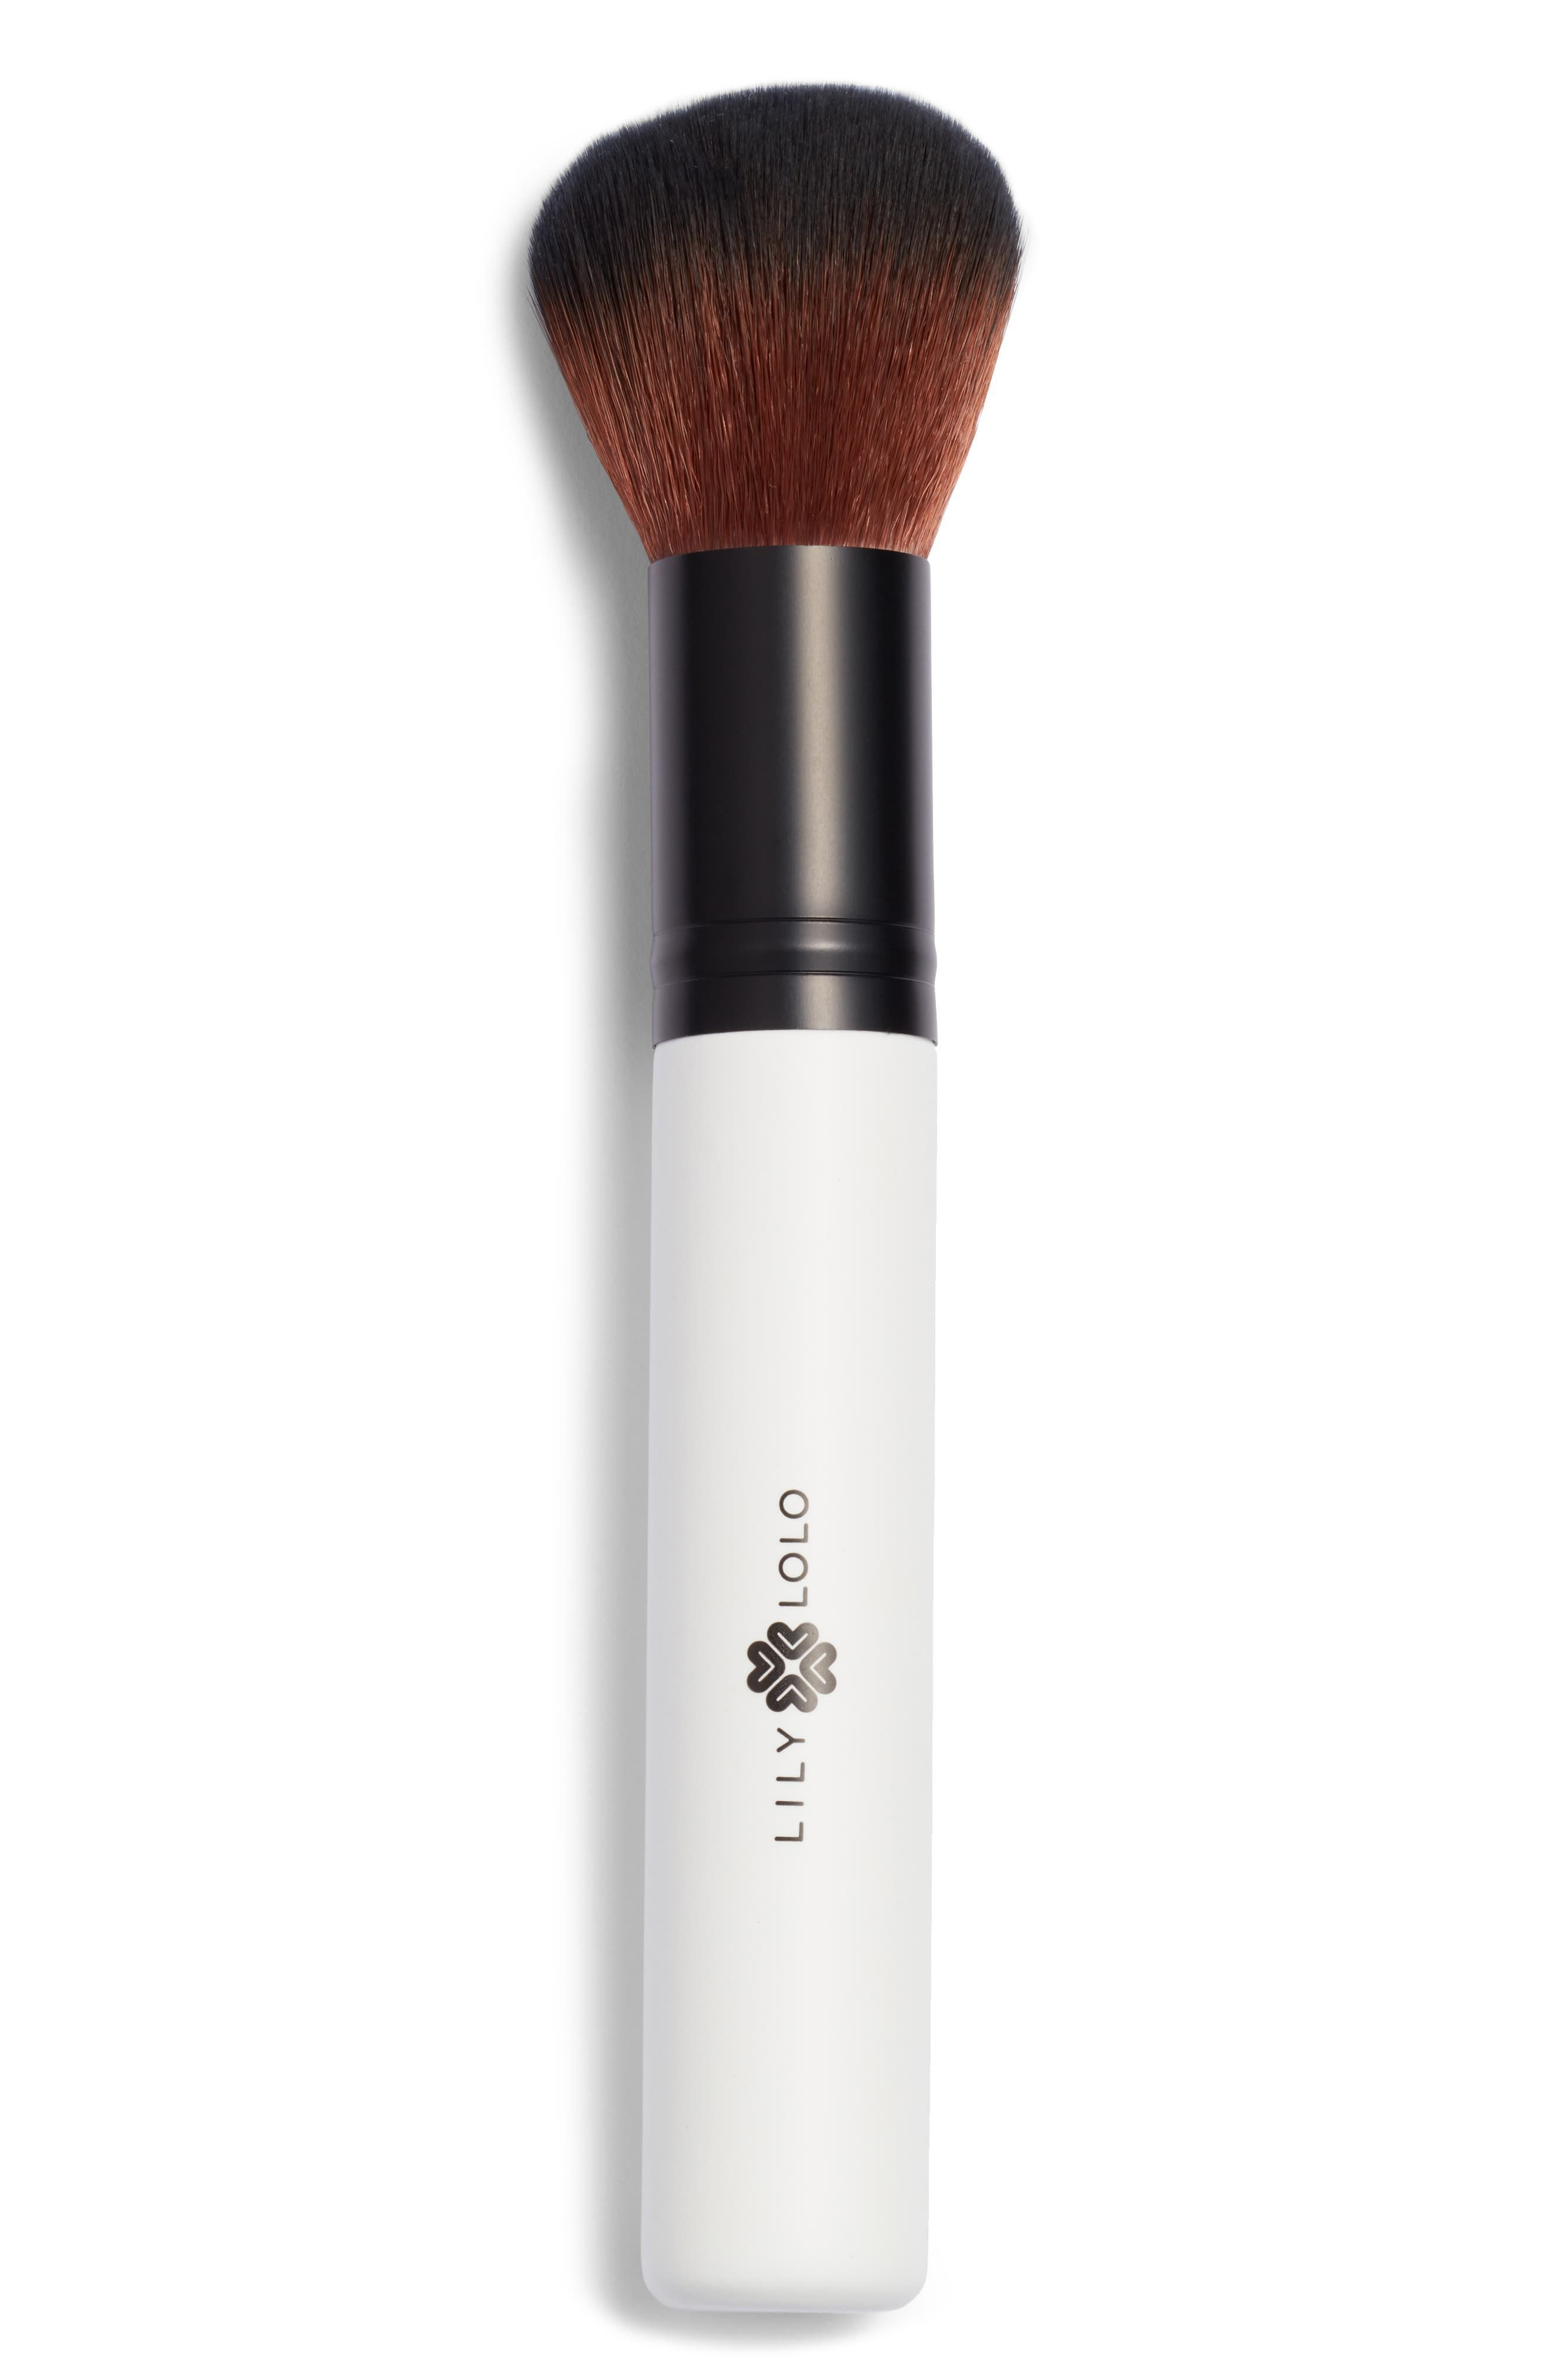 Lily Lolo Bronzer Brush #lilylolo Lily Lolo Bronzer Brush, Size One Size - No Color #lilylolo Lily Lolo Bronzer Brush #lilylolo Lily Lolo Bronzer Brush, Size One Size - No Color #lilylolo